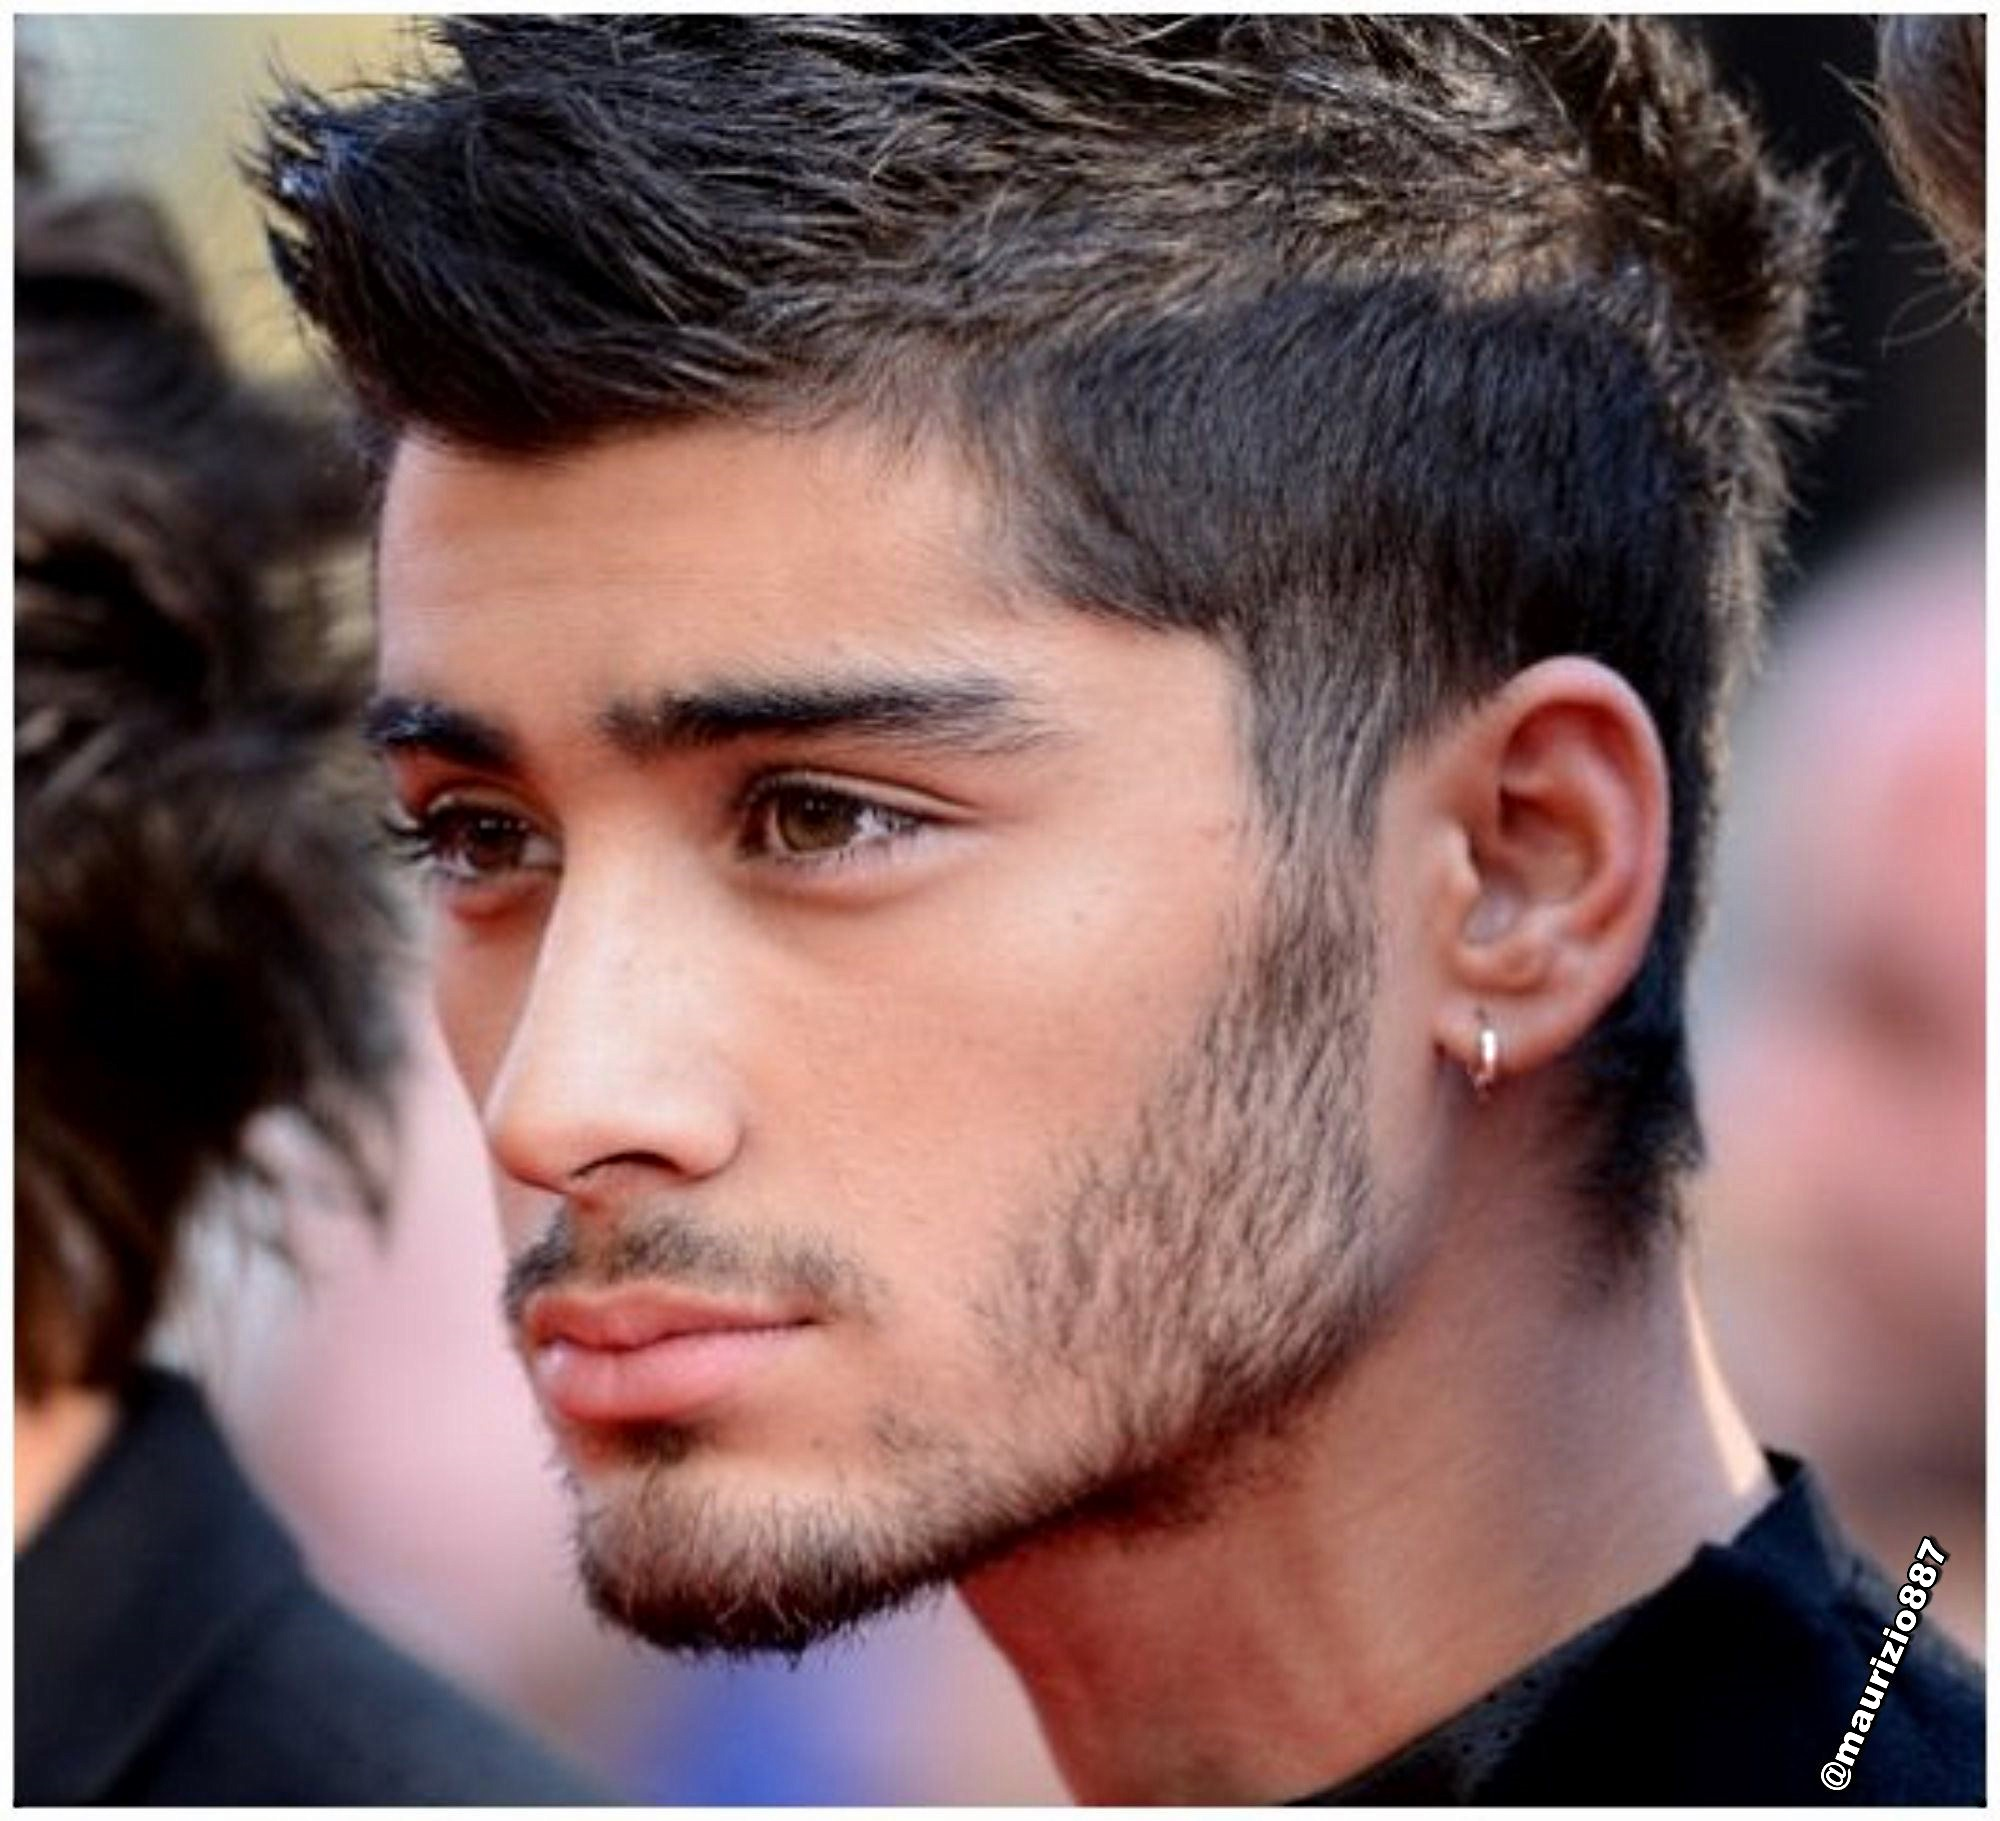 Zayn Malik 2013 - One Direction Photo (35359774) - Fanpop